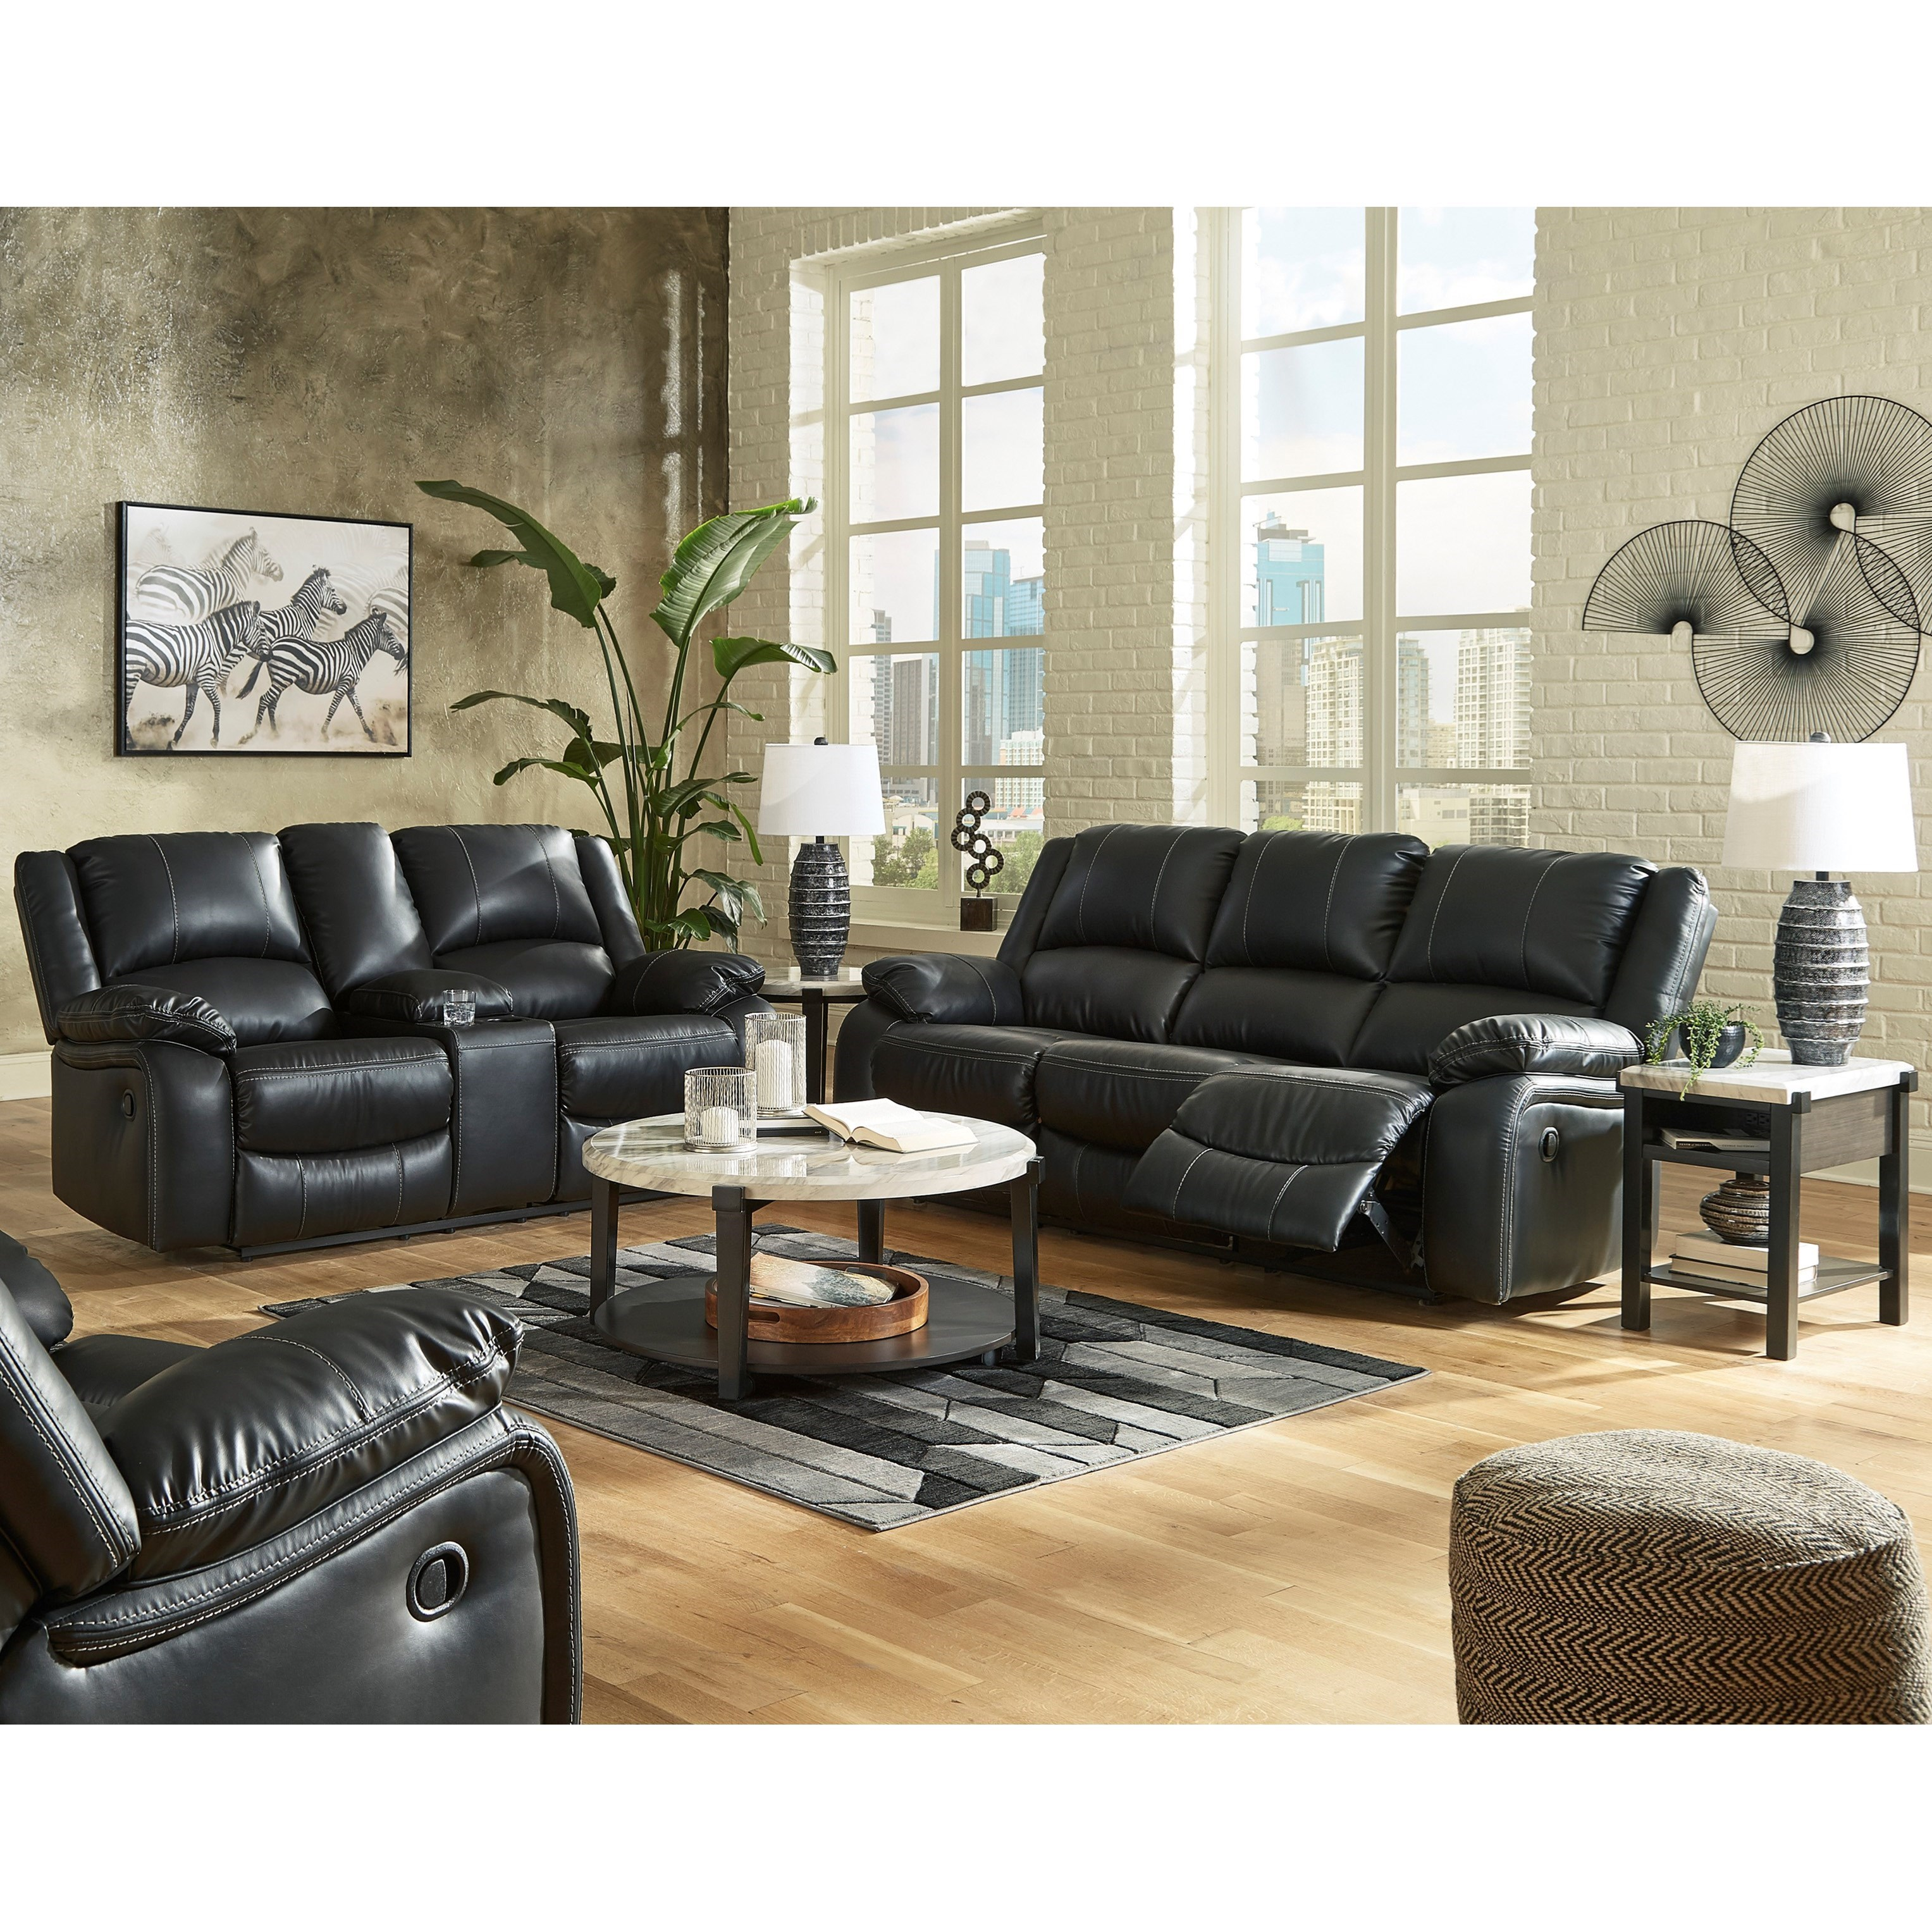 Calderwell Power Reclining Living Room Group by Signature Design by Ashley at Northeast Factory Direct